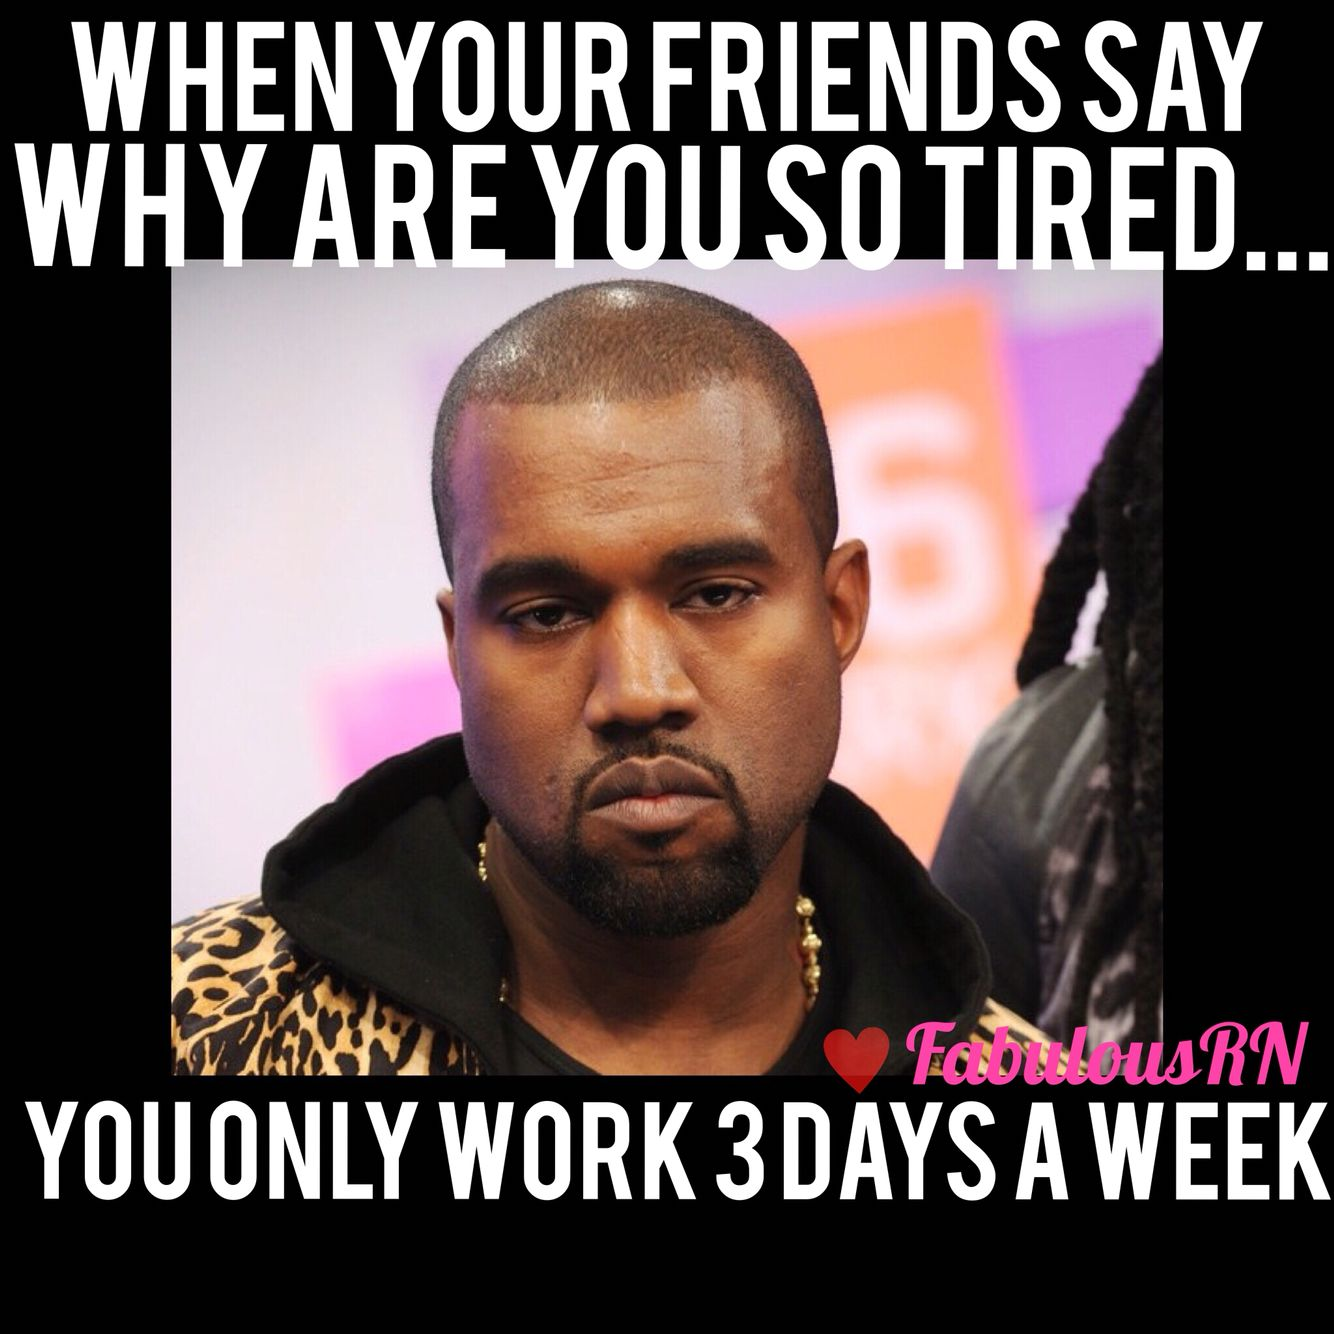 Yes I Work Your Whole Work Week In 3 Days Never Just A 12 Hour Shift As Well At Least 13 Keeping 6 People Alive And Happ Nurse Humor Medical Humor Rn Humor